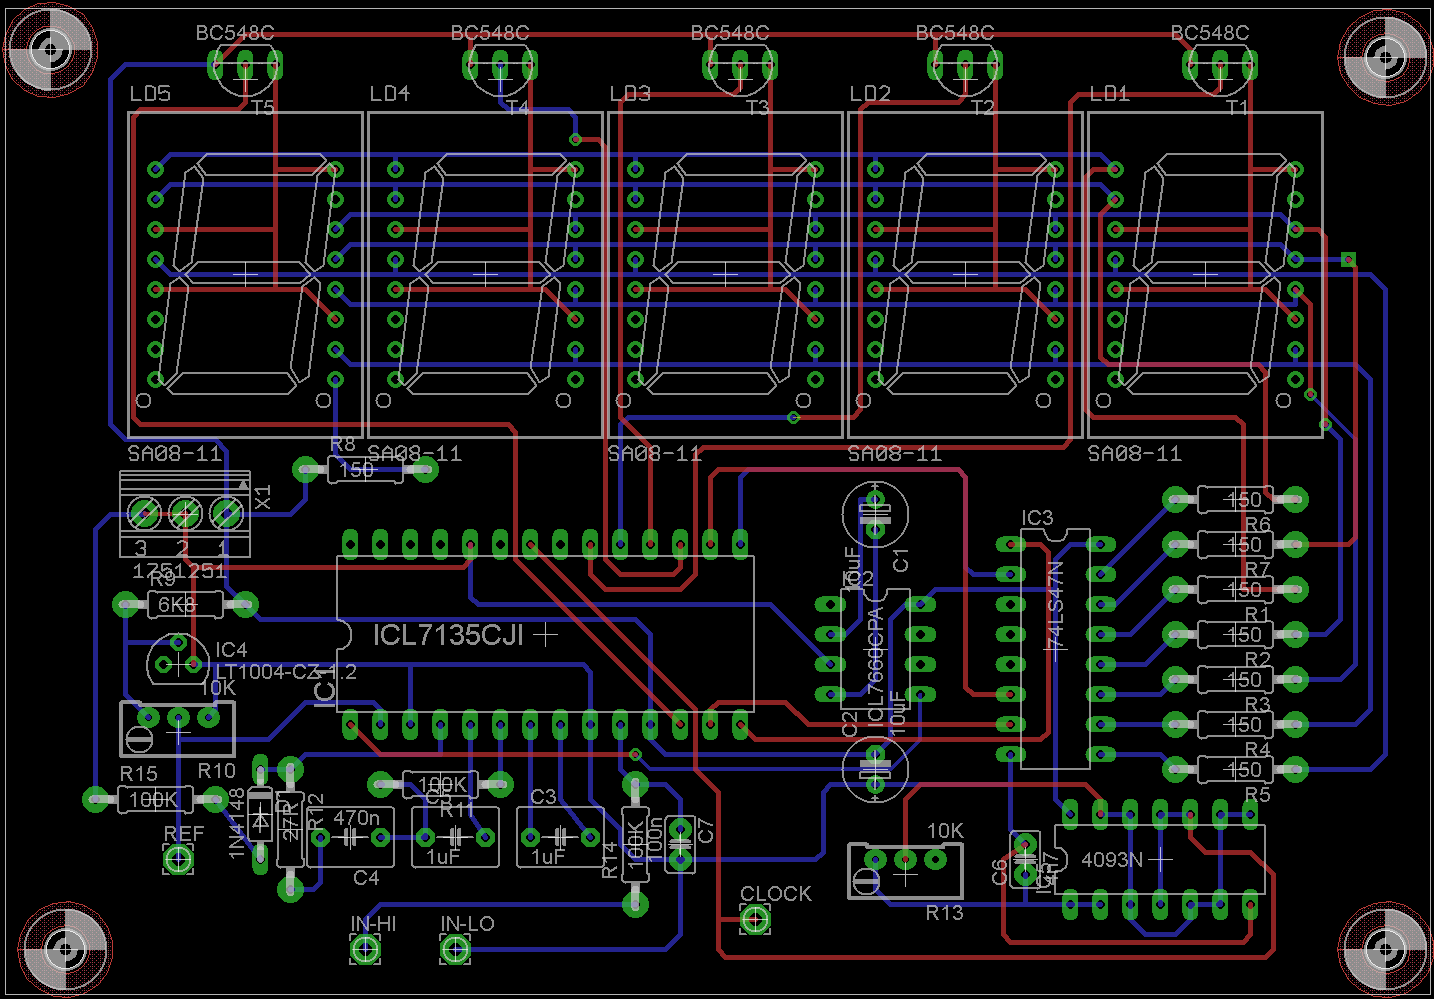 Icl7135 Voltmeter Schematics Trusted Wiring Diagrams Plasma Display Circuit Diagram Using A D Converter Tipps Gesuchtt Fr Mikrocontroller Net Electronic Schematic Board